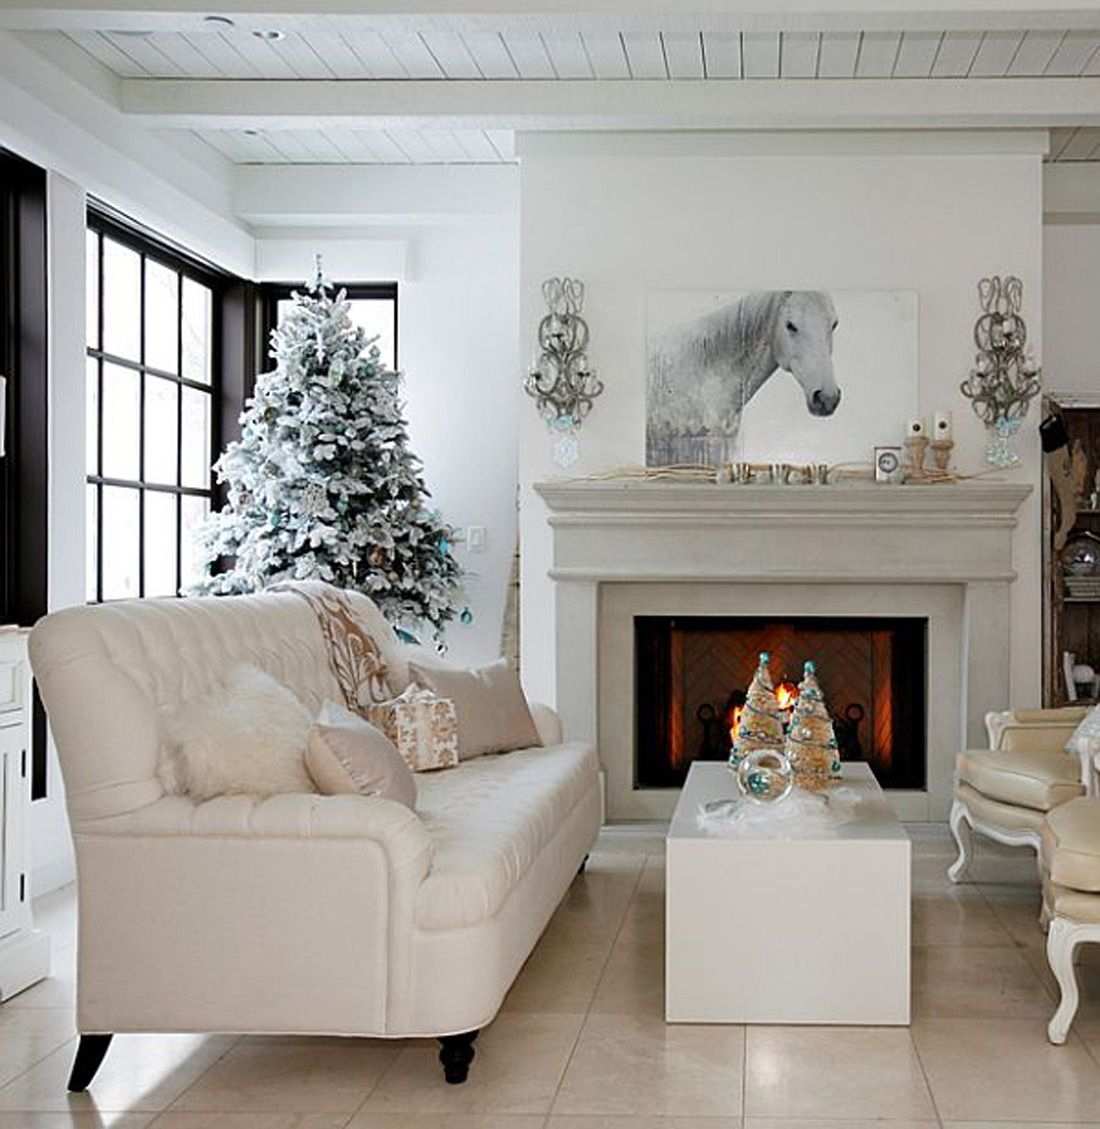 zen decorating for small space | Simple Modern Christmas Living Room Decorating Ideas For Small Space ...